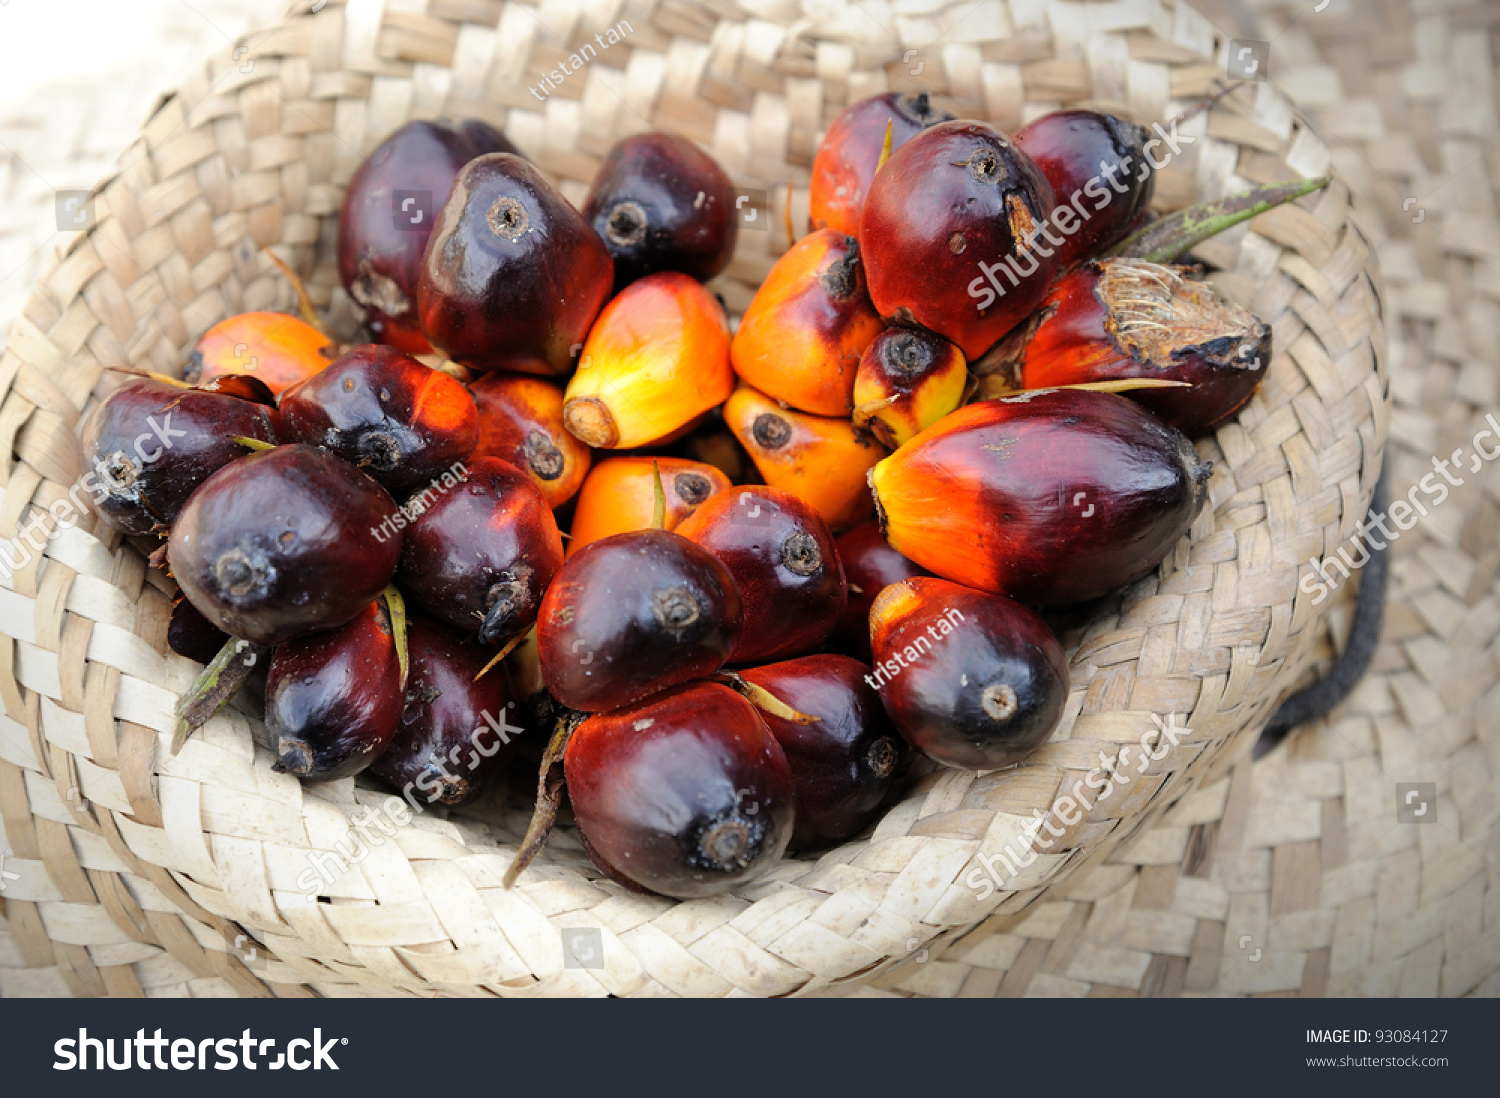 Palm Oil, A Well